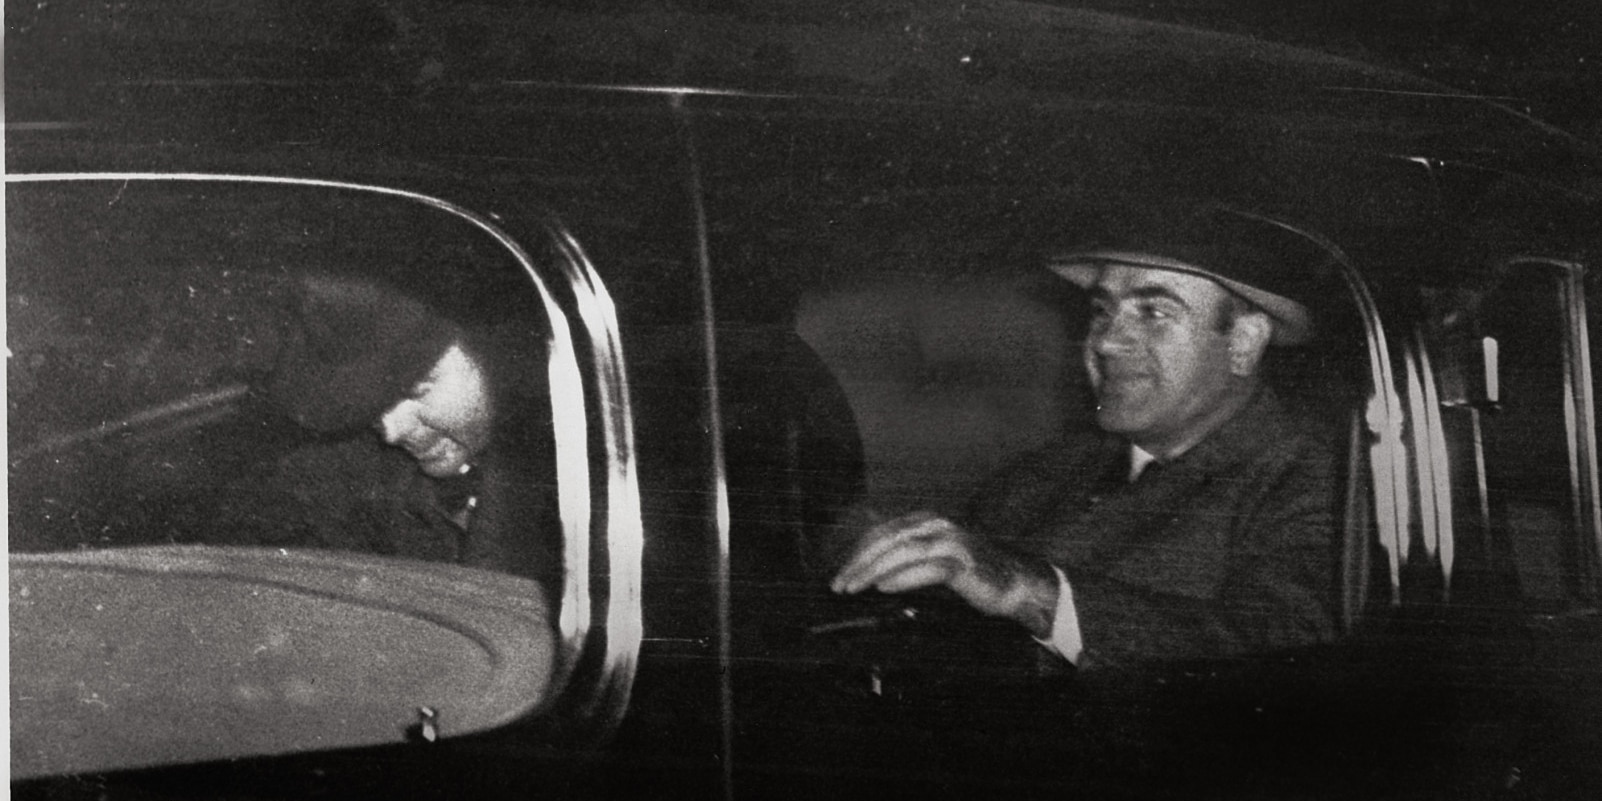 Al Capone, right, Chicago's infamous gang overlord during prohibition, leaves Harrisburg, Pa., on Nov. 16, 1939 with a federal officer for Lewisburg, Pa., where he was released after spending seven years in prison in Atlanta and San Francisco's Alcatraz. (AP Photo)